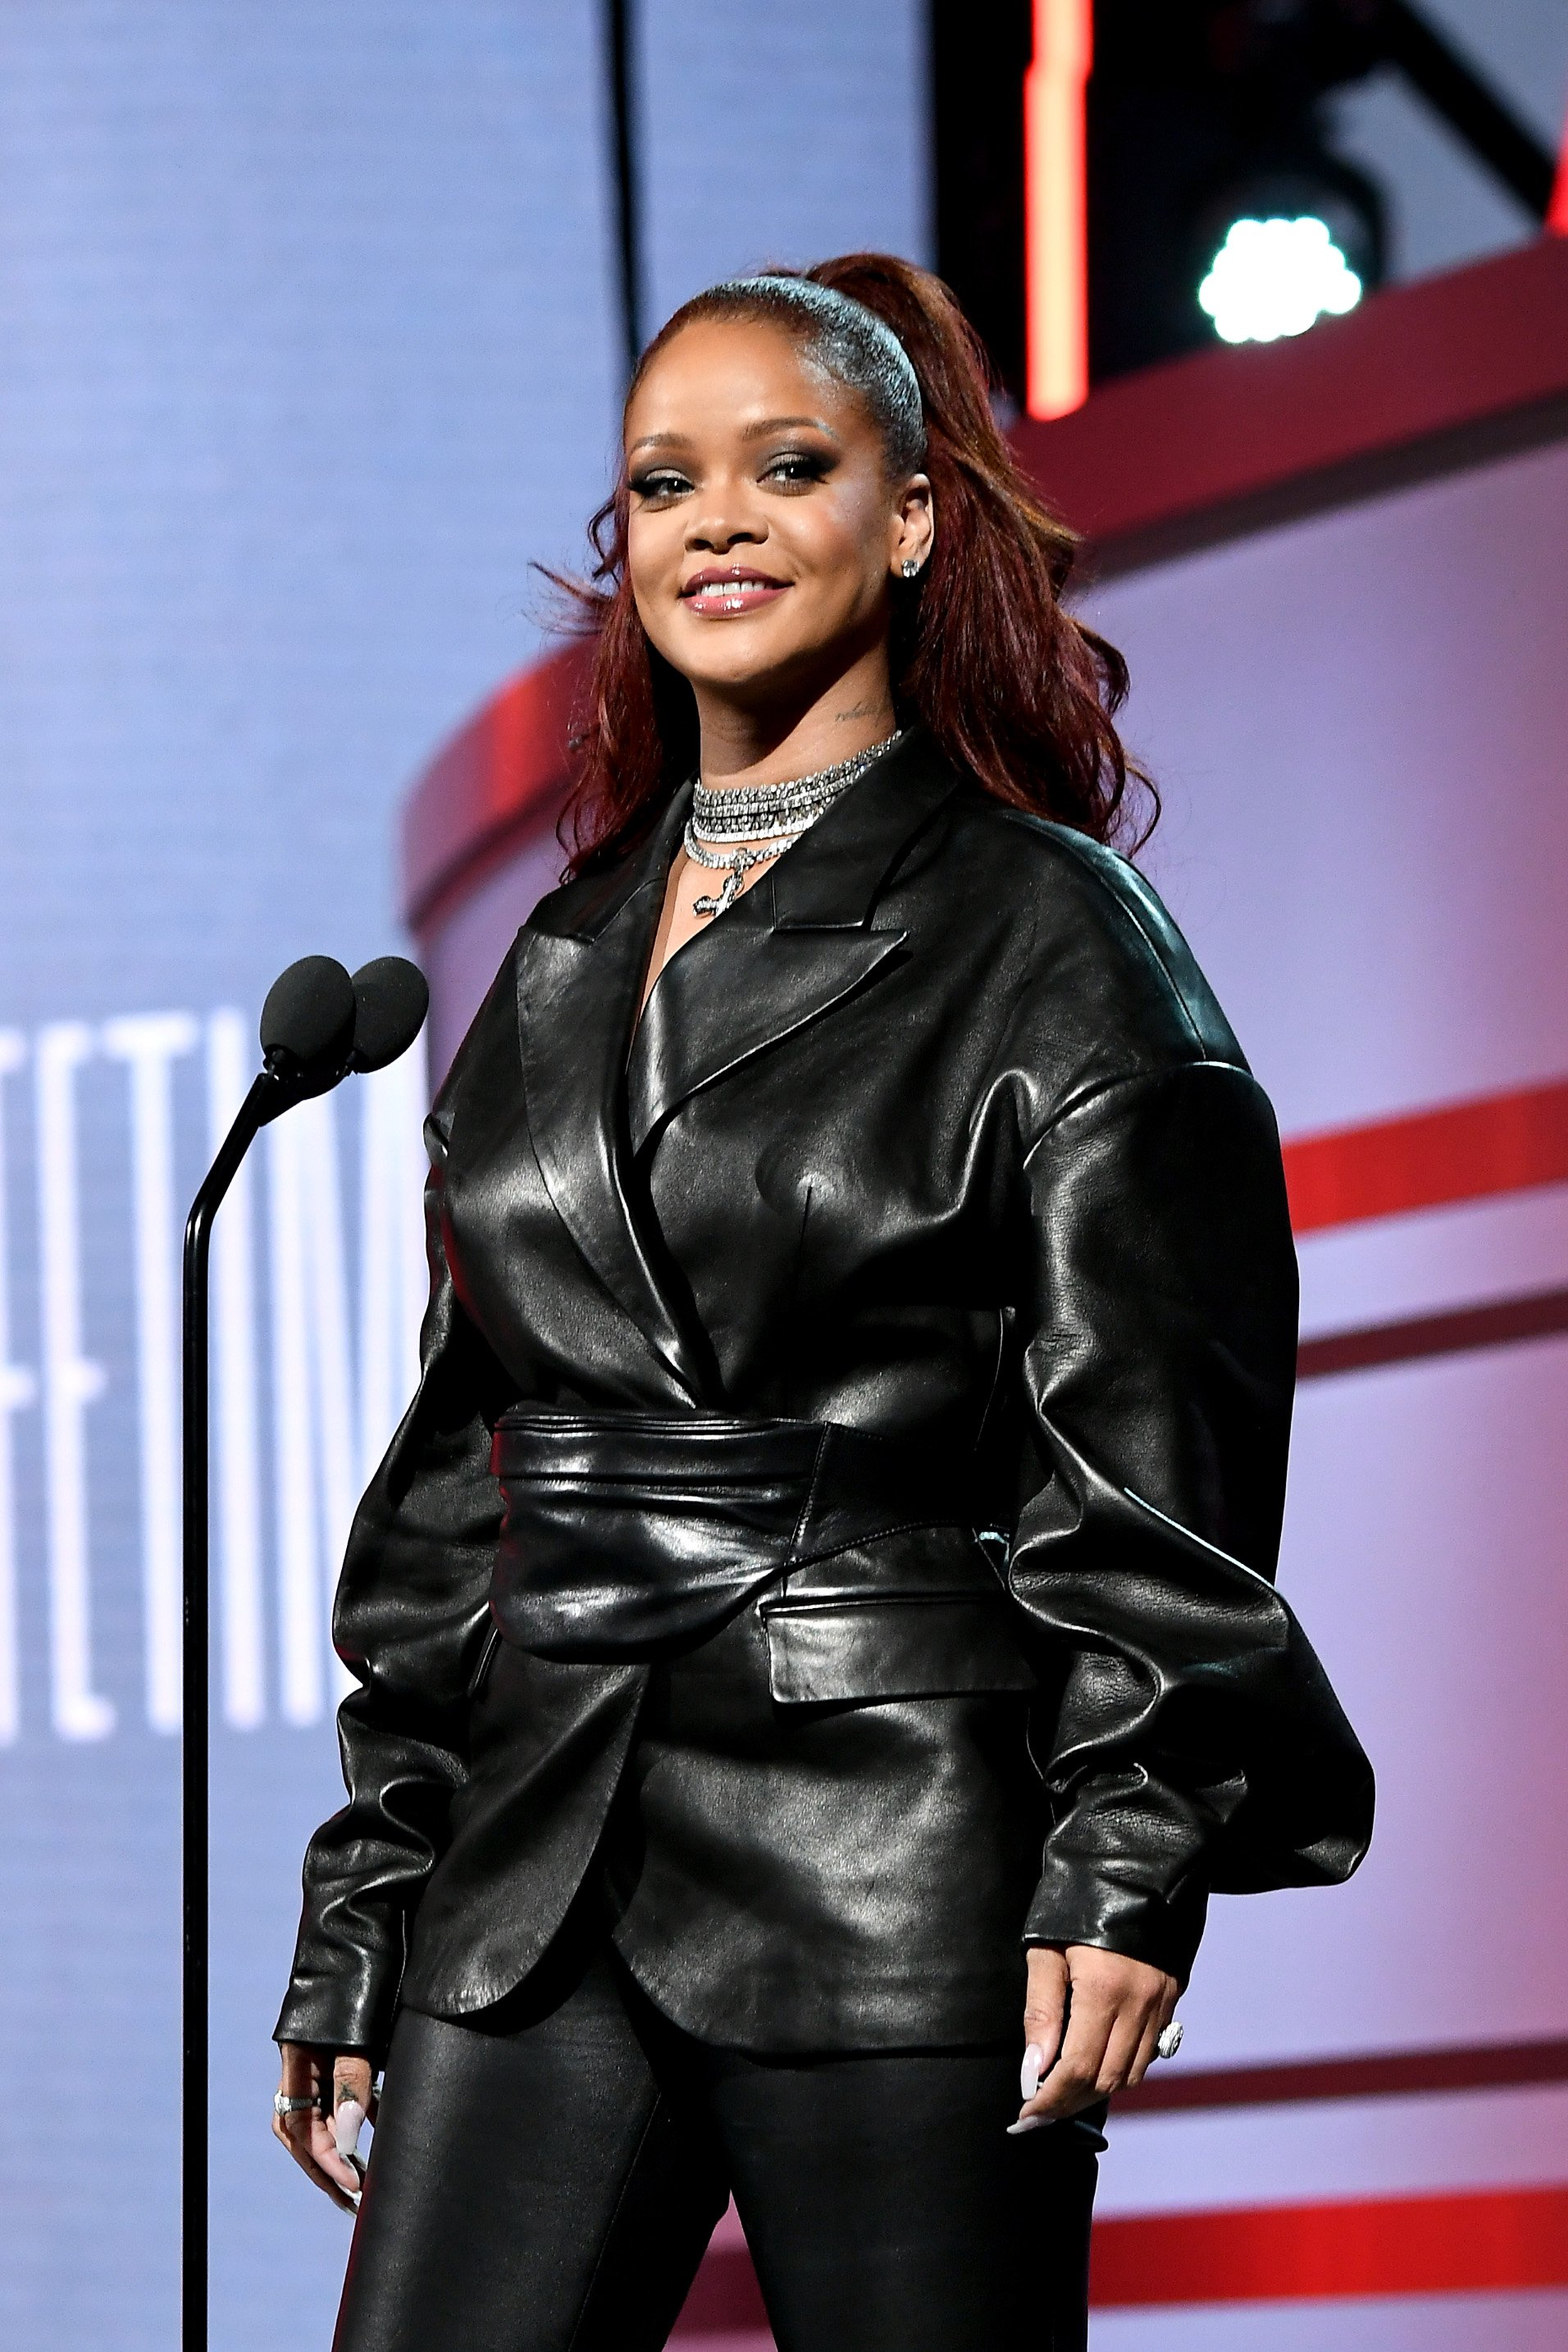 Rihanna speaks onstage at the 2019 BET Awards at Microsoft Theater on June 23, 2019, in Los Angeles, California. | Source: Getty Images.